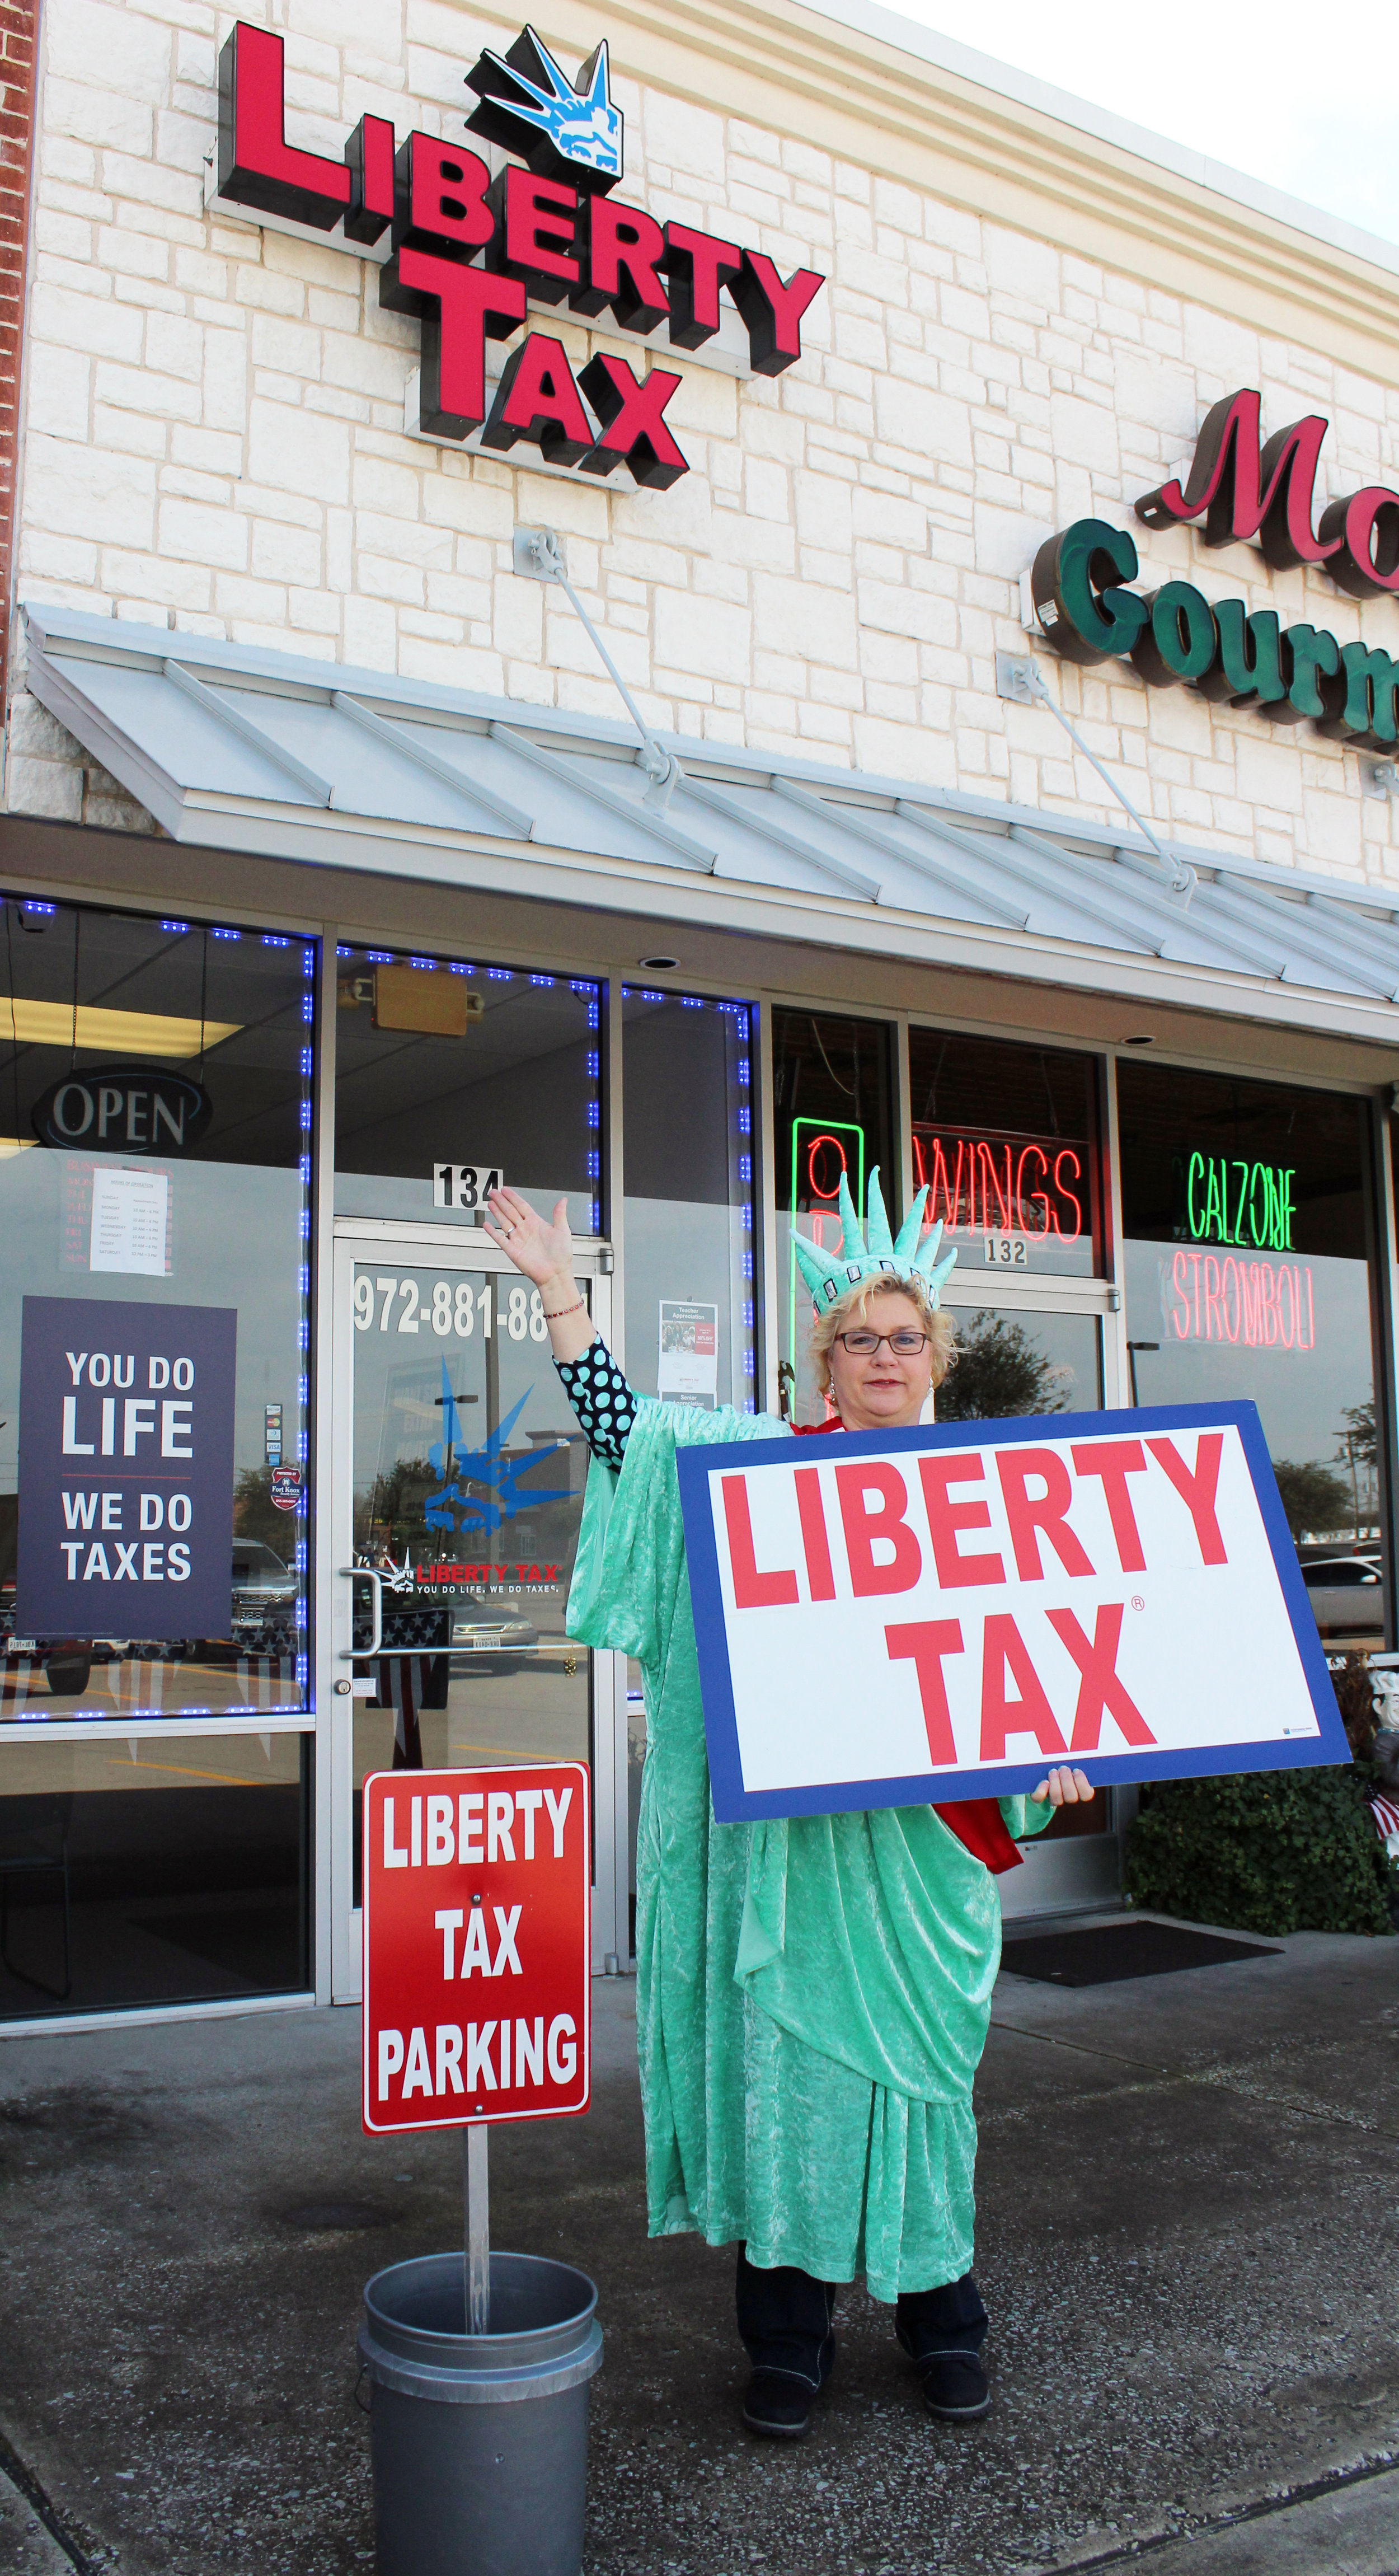 Liberty Tax Service is located at 158 W. FM 544, #134. (From left) Andy Deetz, Barbara Mortonson (office manager and Murphy resident) and Kim Deetz.